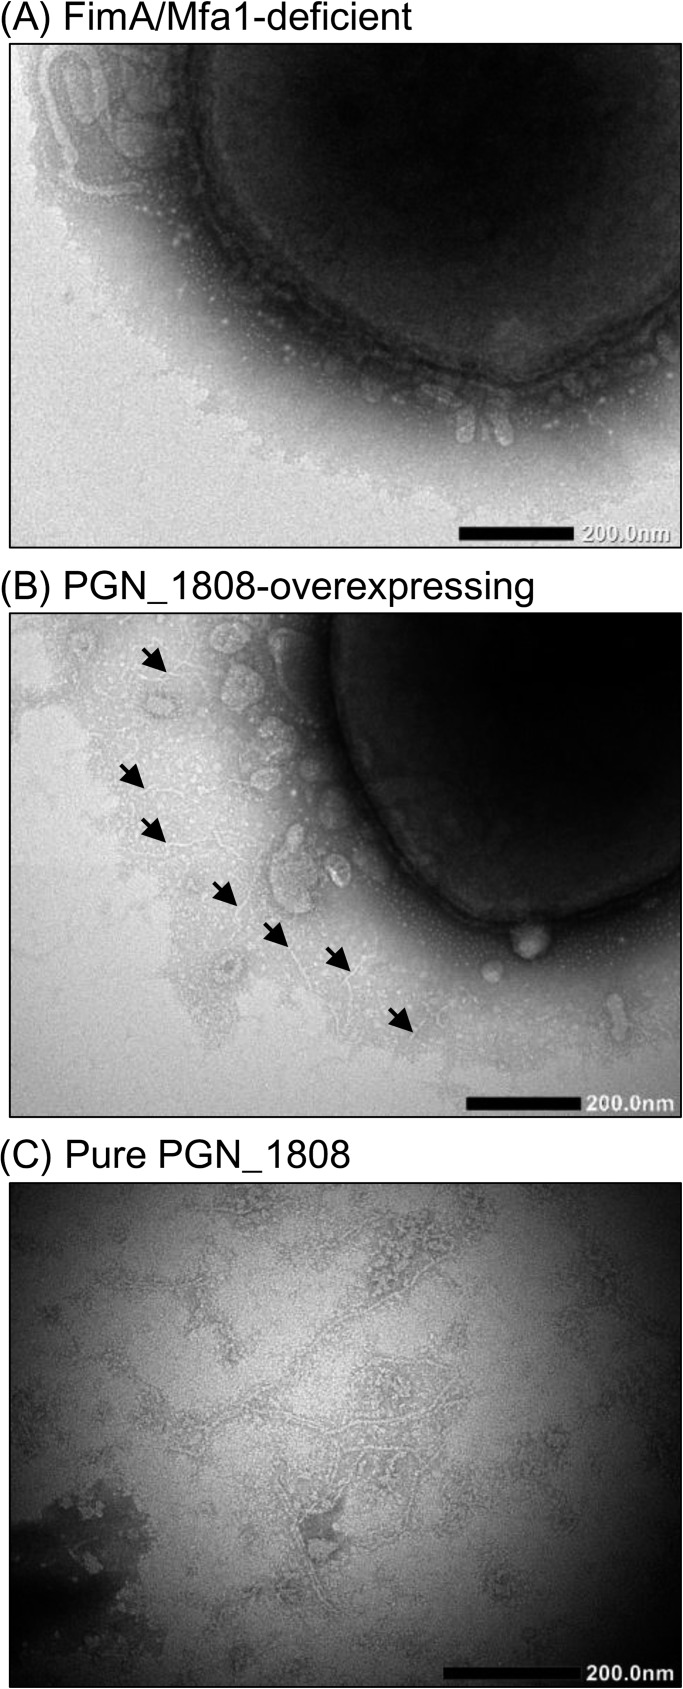 Transmission electron micrographs. Whole cells of the P . gingivalis mutant that was deficient in both FimA and Mfa1 fimbriae (A), whole cells of the PGN_1808-overexpressing mutant (B), and fractionated PGN_1808 (C) were negatively stained, then observed by TEM. Filamentous structures (2‒3 nm × 200‒400 nm) were observed on cell surfaces of the PGN_1808-overexpressing mutant (indicated by arrows) and in the PGN_1808 fraction. Scale bars indicate 200 nm.